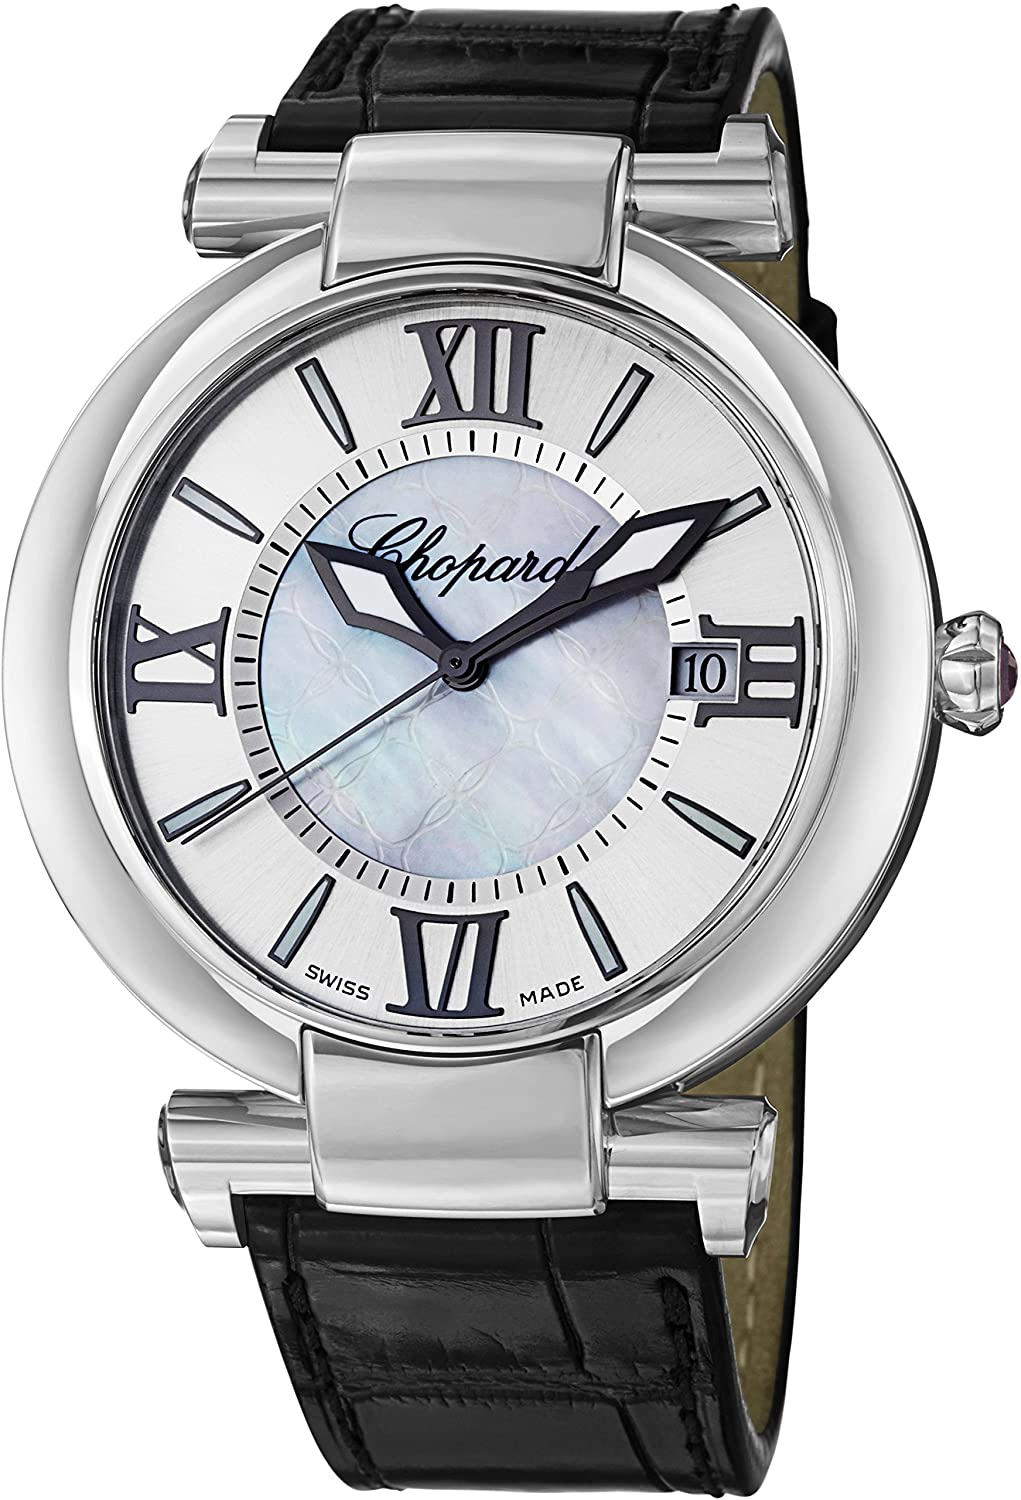 Chopard Imperiale Large Mother of Pearl Dial Automatic Swiss Made Watch 388531-3009